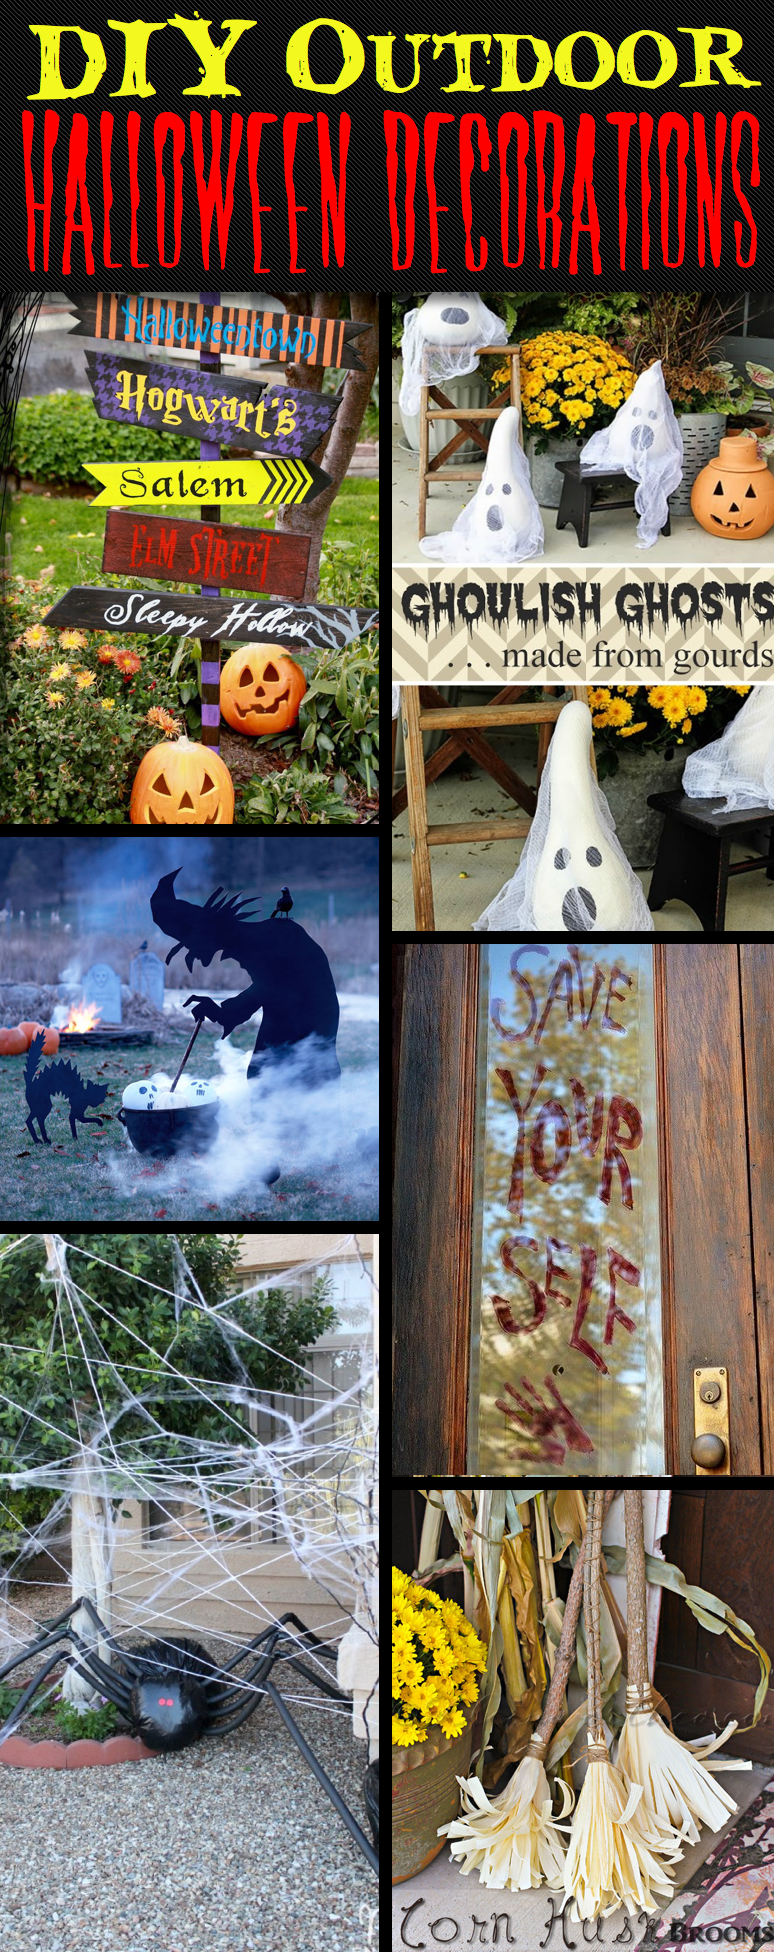 Cute halloween decorations to make - 30 Astounding But Easy Diy Outdoor Halloween Decoration Ideas